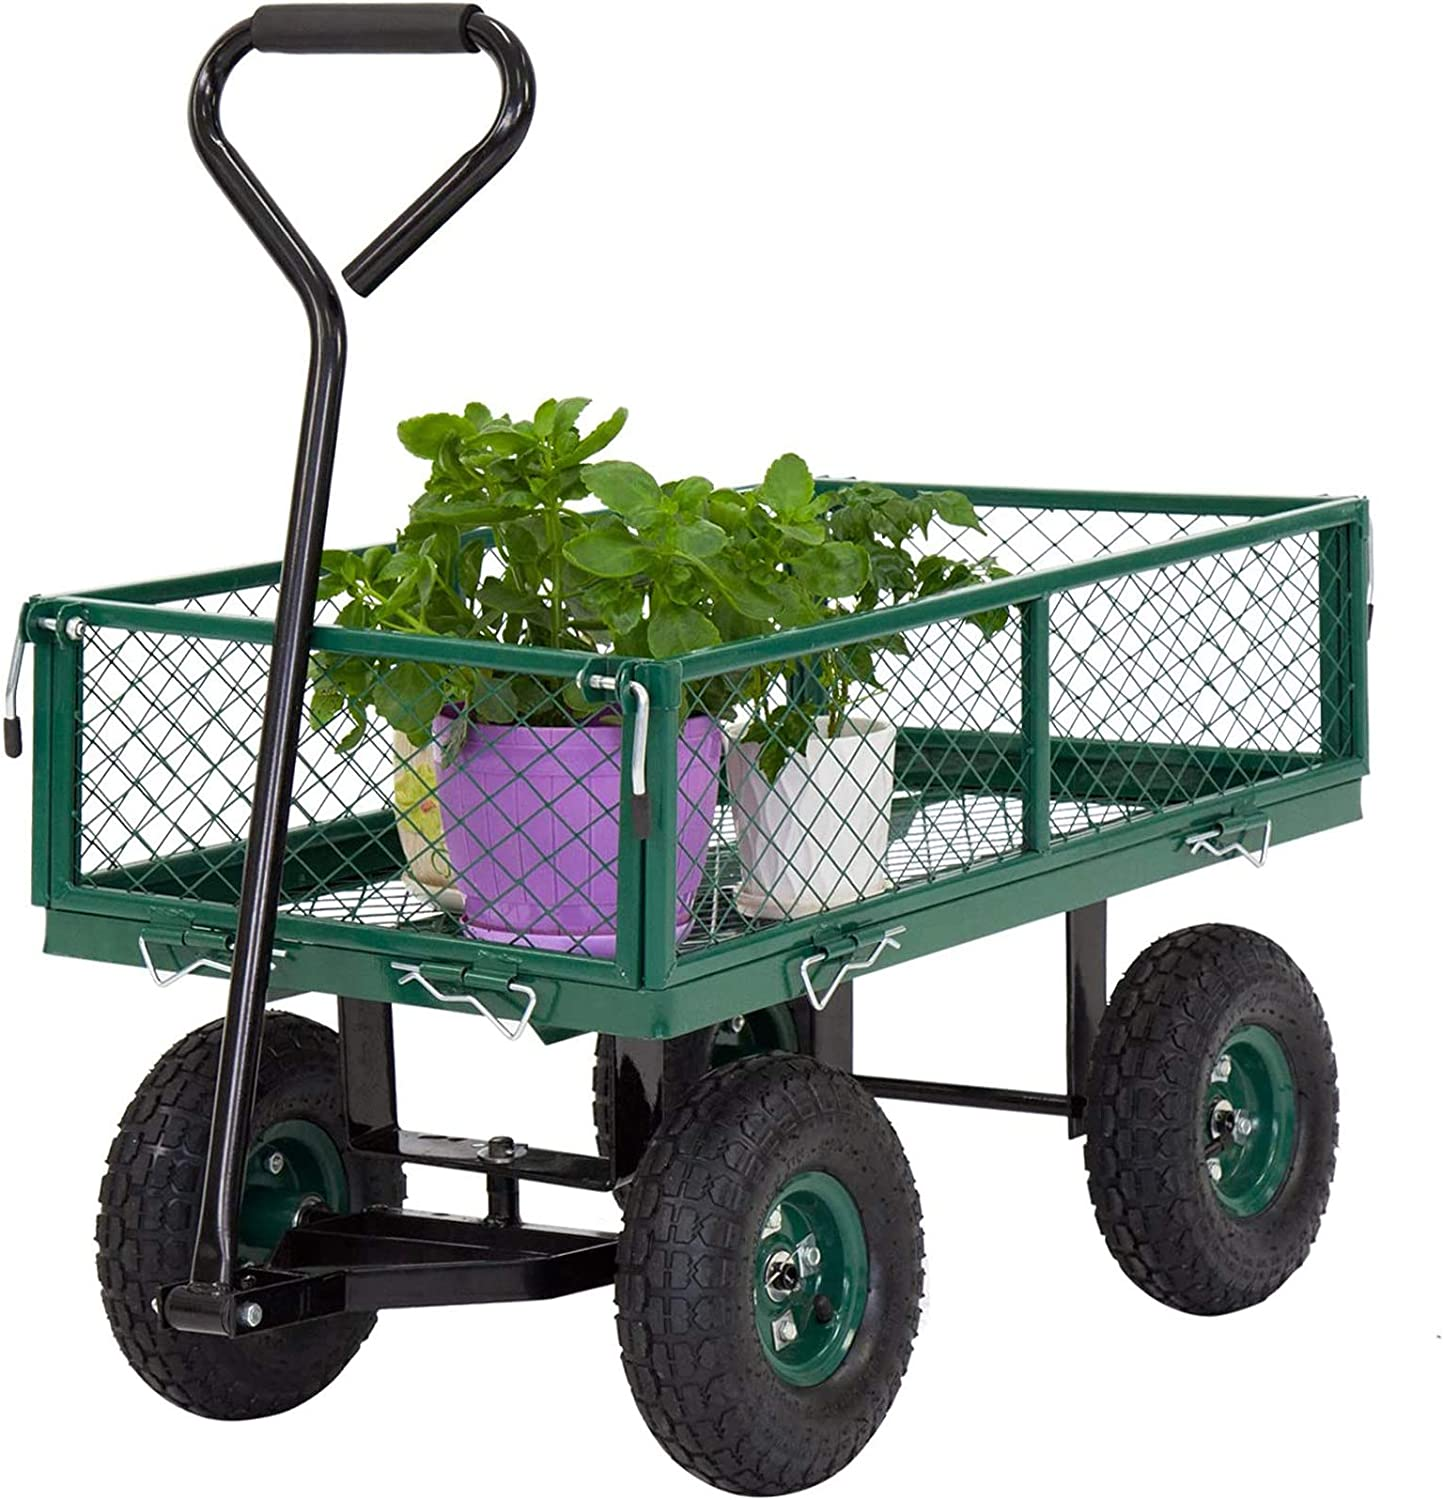 Garden Utility Cart Garden cart with Wheels with Removable Sides Outdoor Lawn Wagon Heavy-Duty 650 lbs Capacity, Green